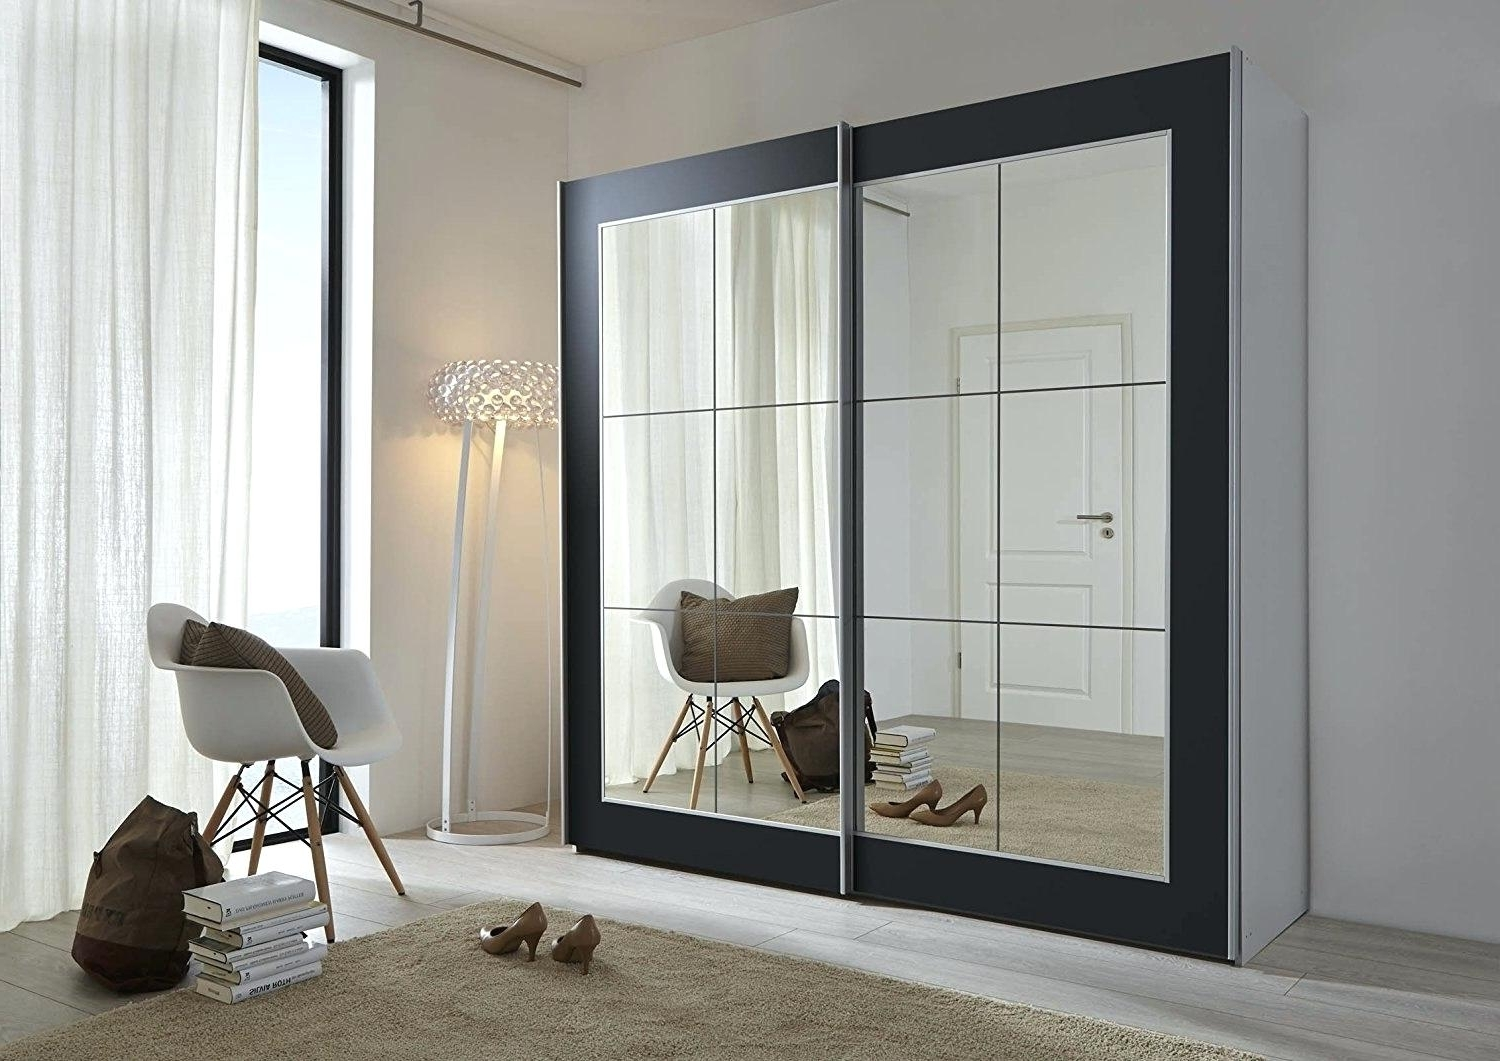 Widely Used Black Wardrobes With Mirror Intended For Decoration: Black Sliding Door Wardrobes (View 15 of 15)